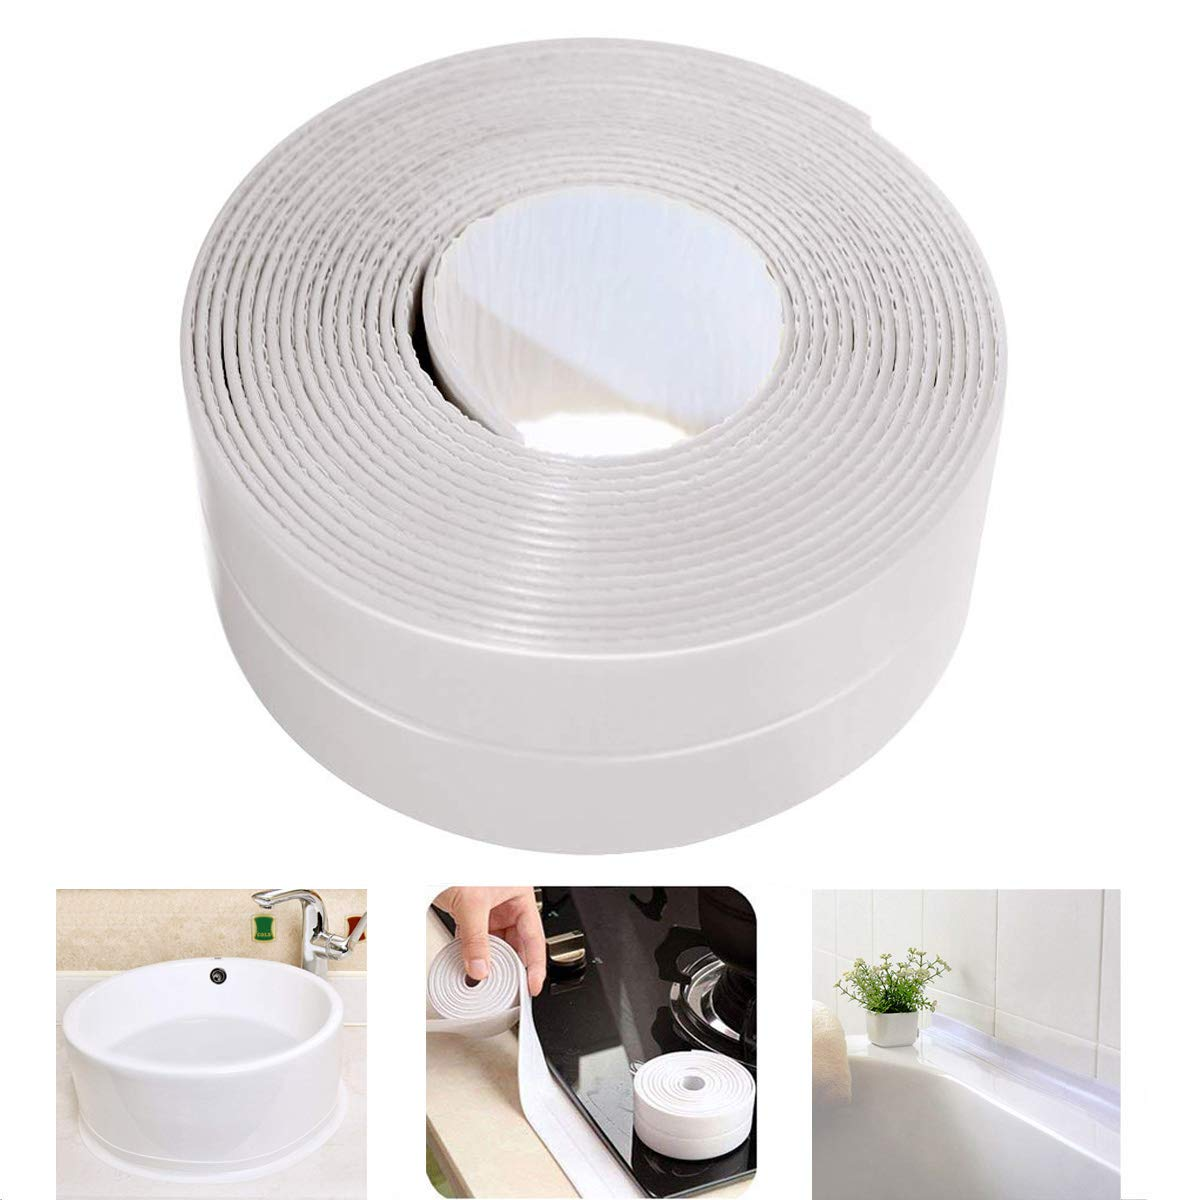 Sealing Strip Flexible Self Adhesive Caulking